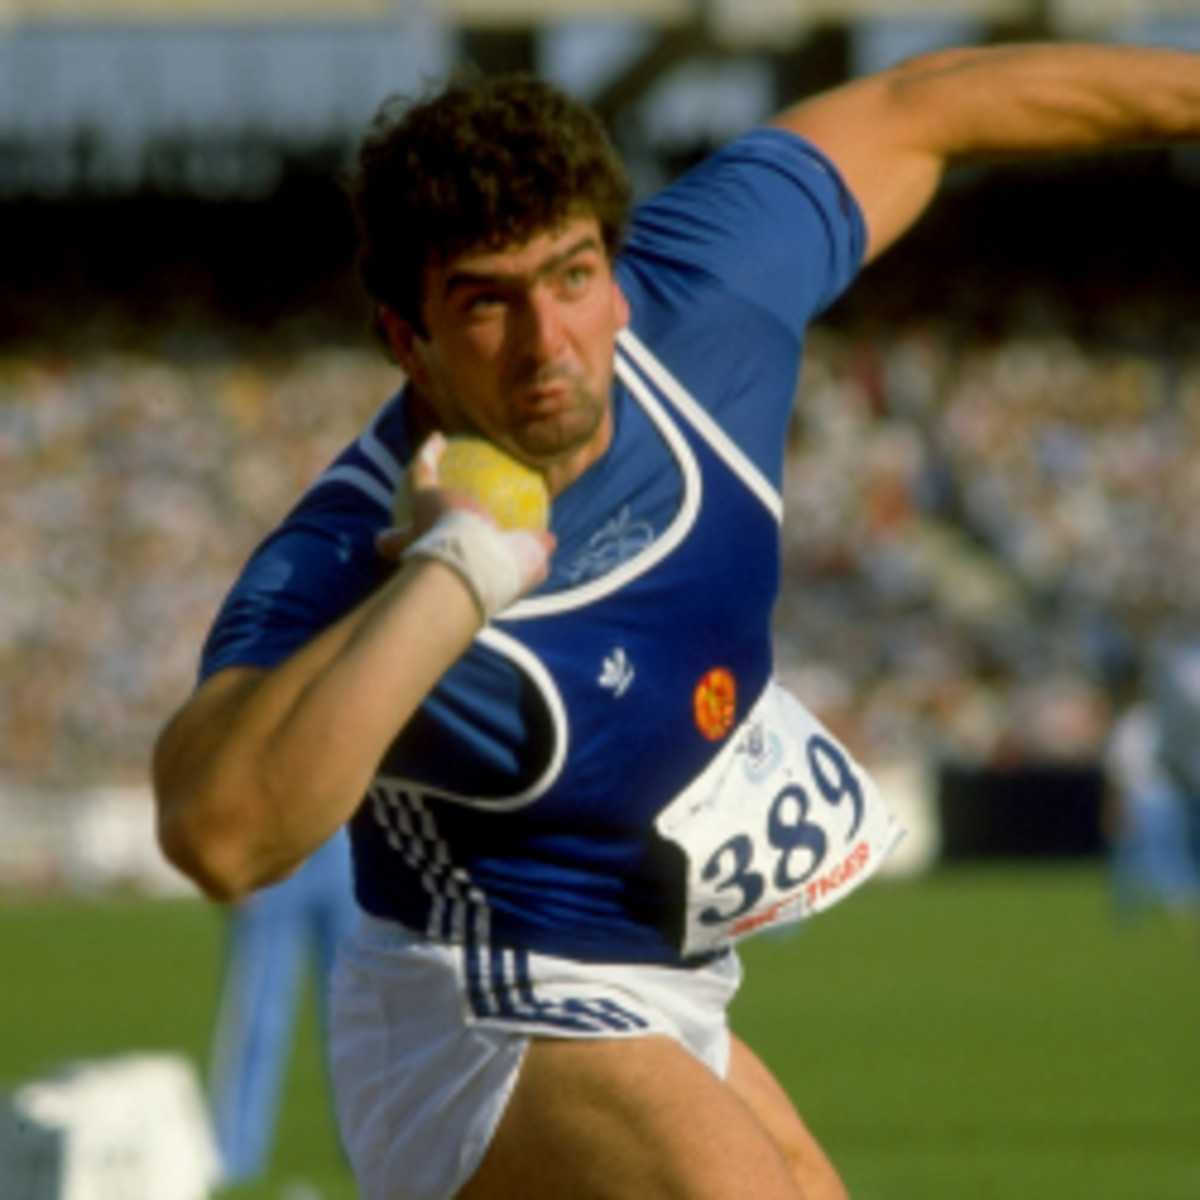 Former Olympic shot put champion, Udo Beyer, admitted to doping in a recent documentary. (Tony Duffy/Getty Images)